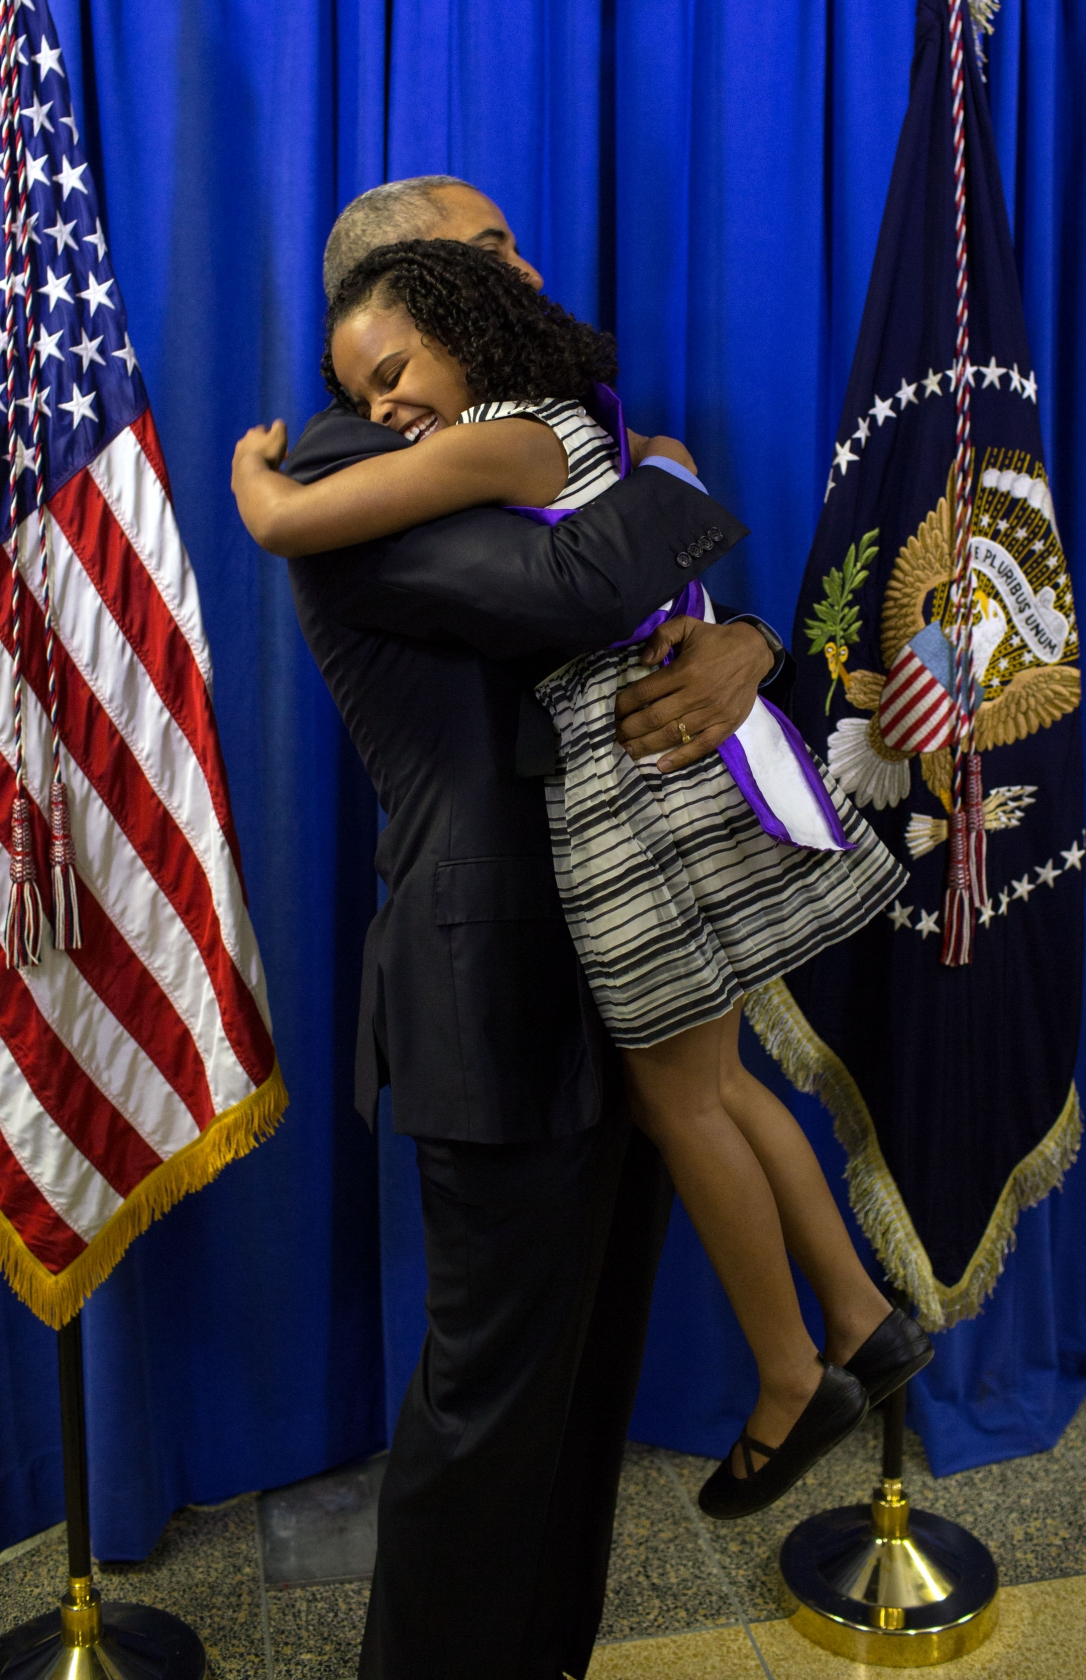 President Barack Obama hugs Mari Copeny, 8, backstage at Northwestern High School in Flint, Mich., May 4, 2016. Mari wrote a letter to the President about the Flint water crisis. (Official White House Photo by Pete Souza)